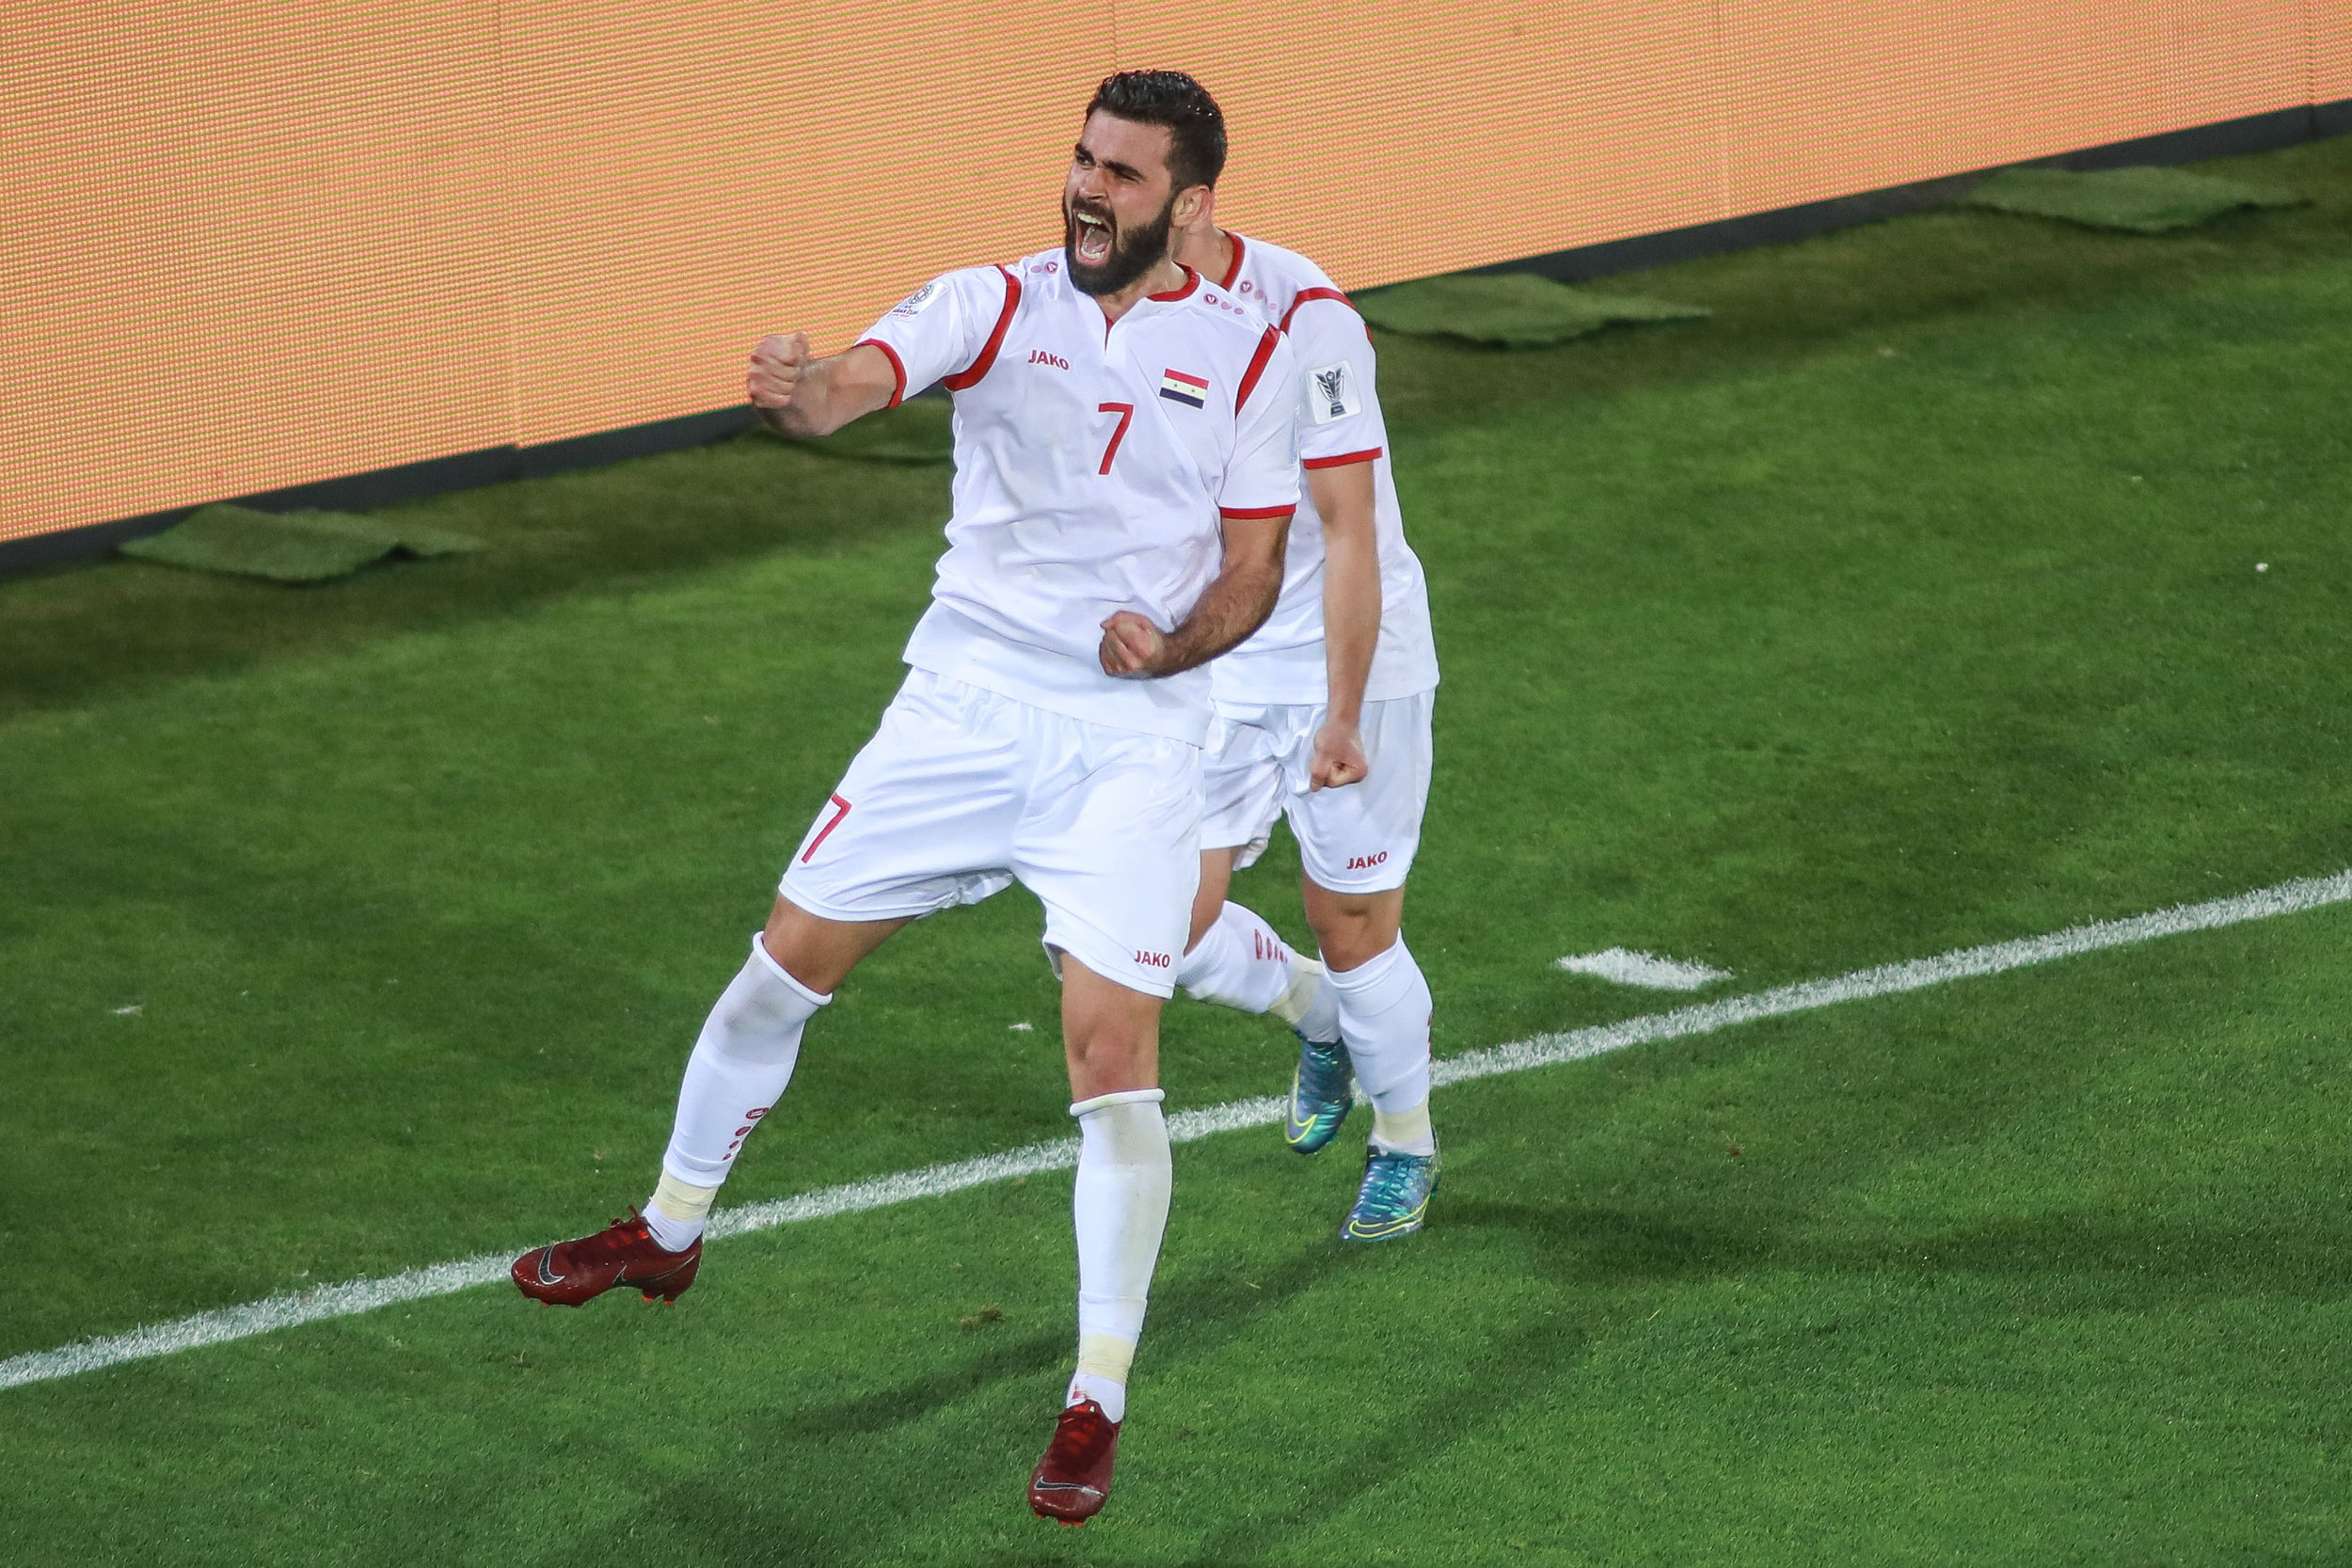 Omar Khribin, brough some hope for the Syrian side (Asian Football Confederation (AFC))